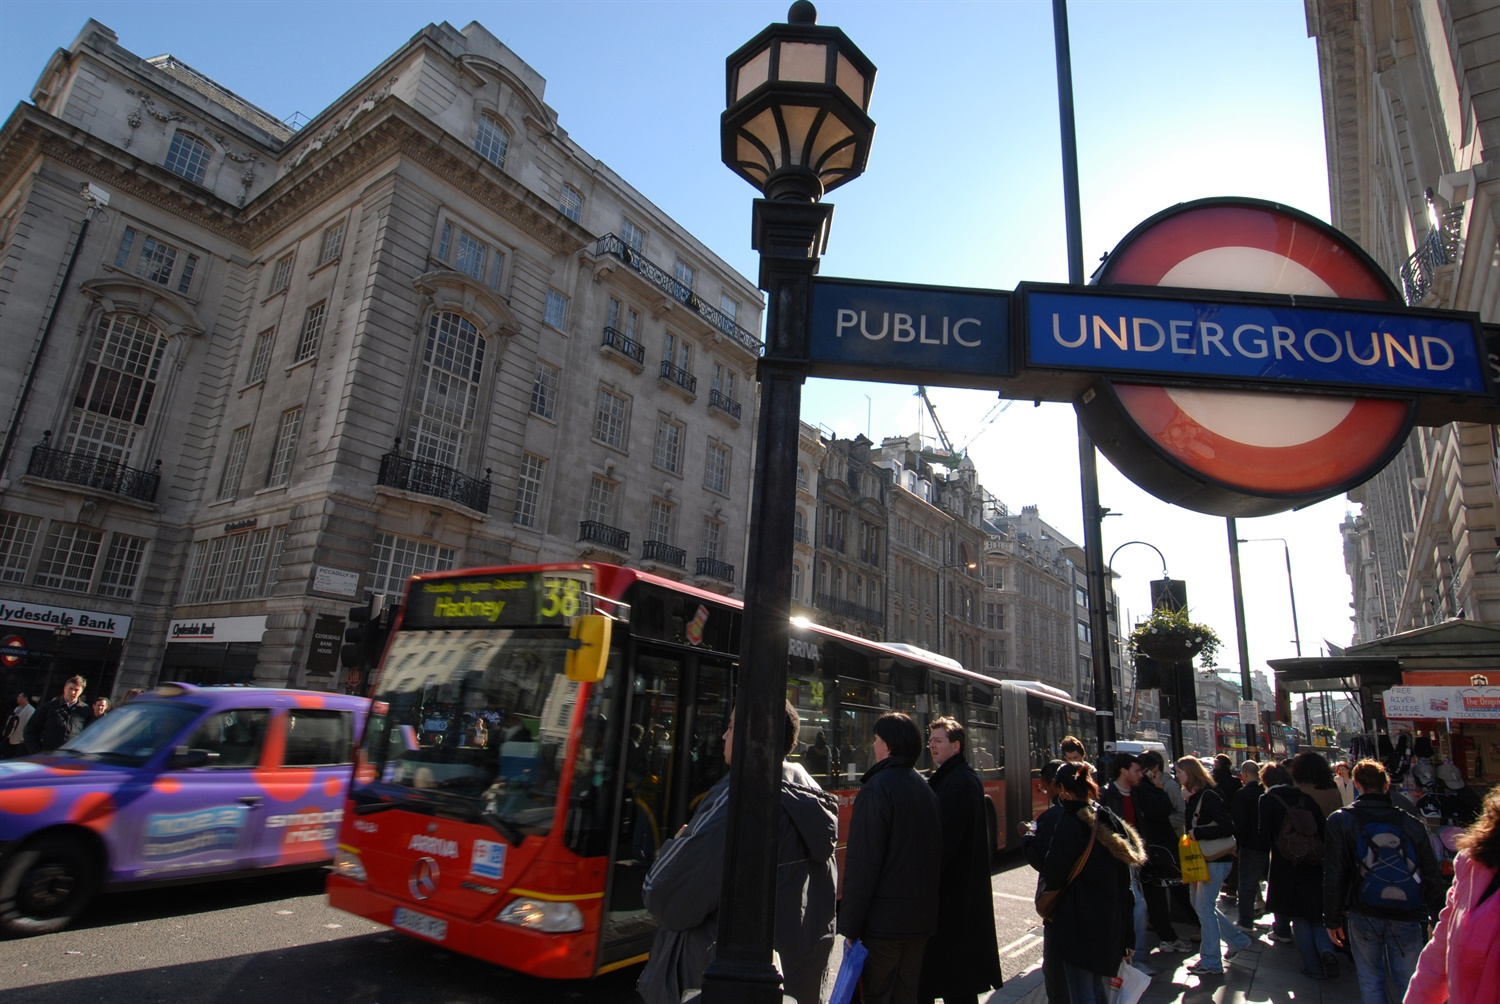 Tube strikes postponed to early September